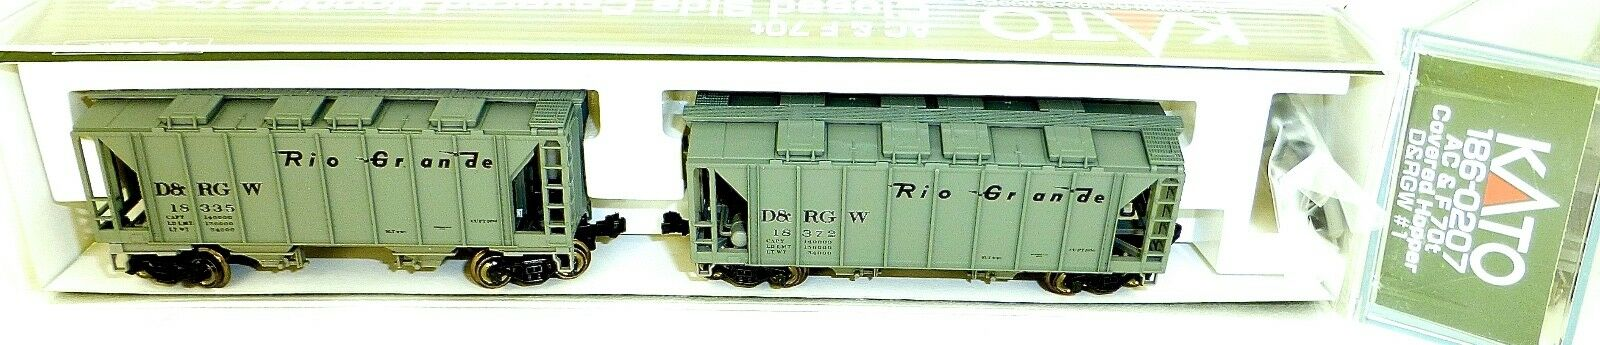 KATO 186-0207 AC&F 70t 2 Car D&RGW Closed Side Covered Hopper OVP N 1 160 HS5 å